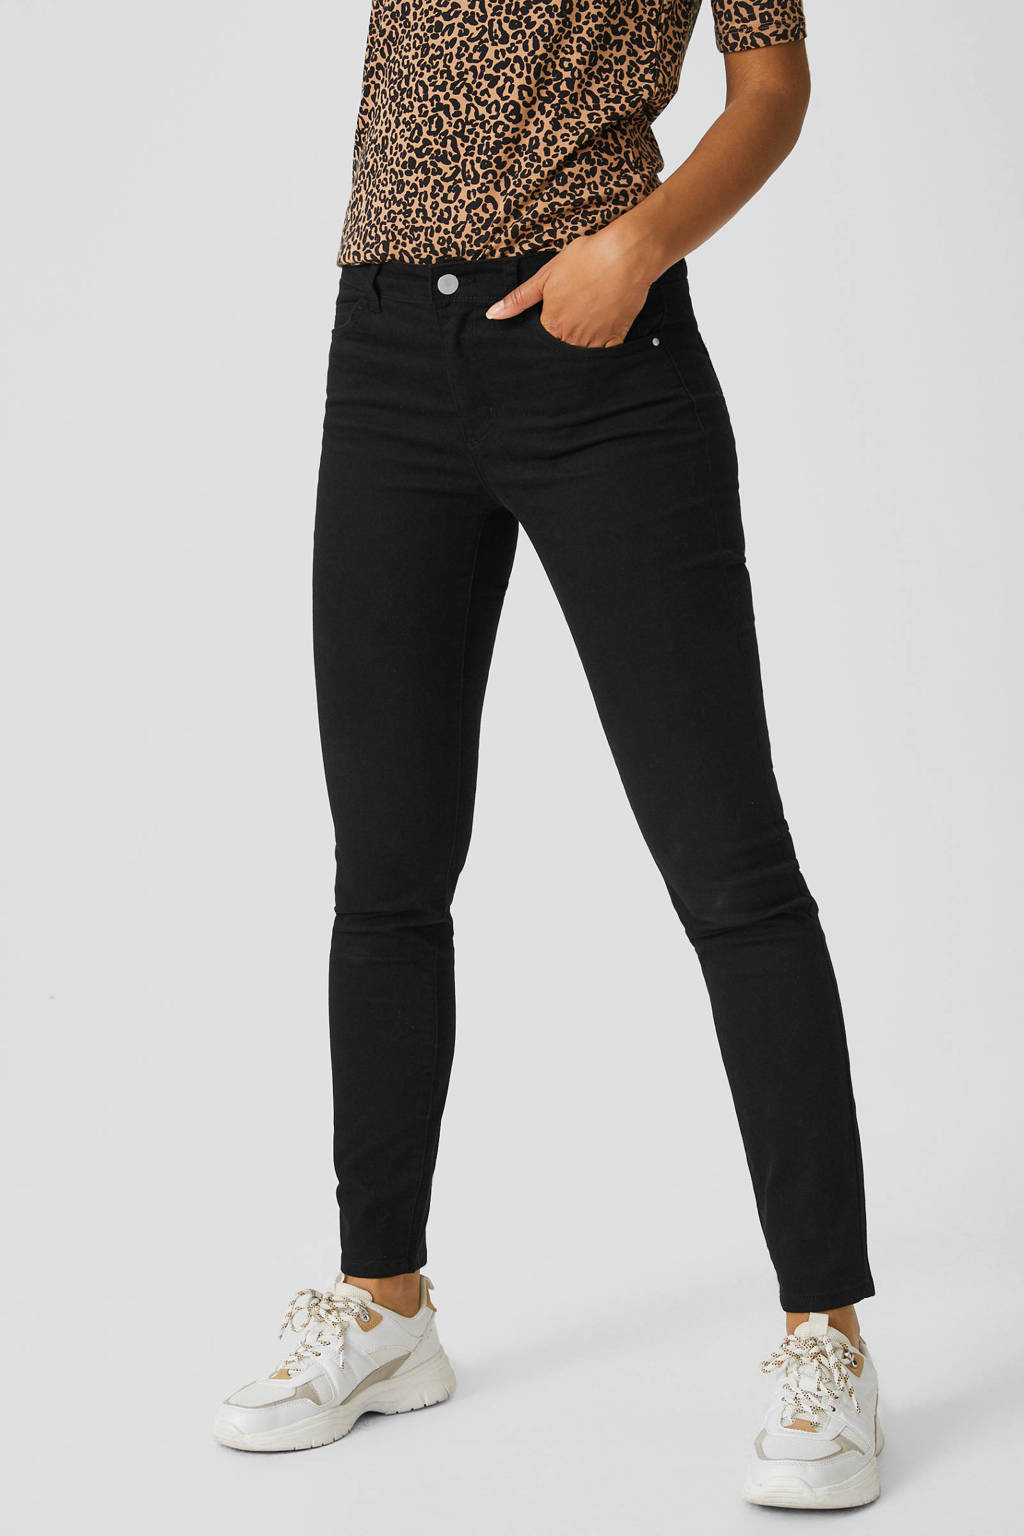 C&A Yessica skinny jeans antraciet, Antraciet